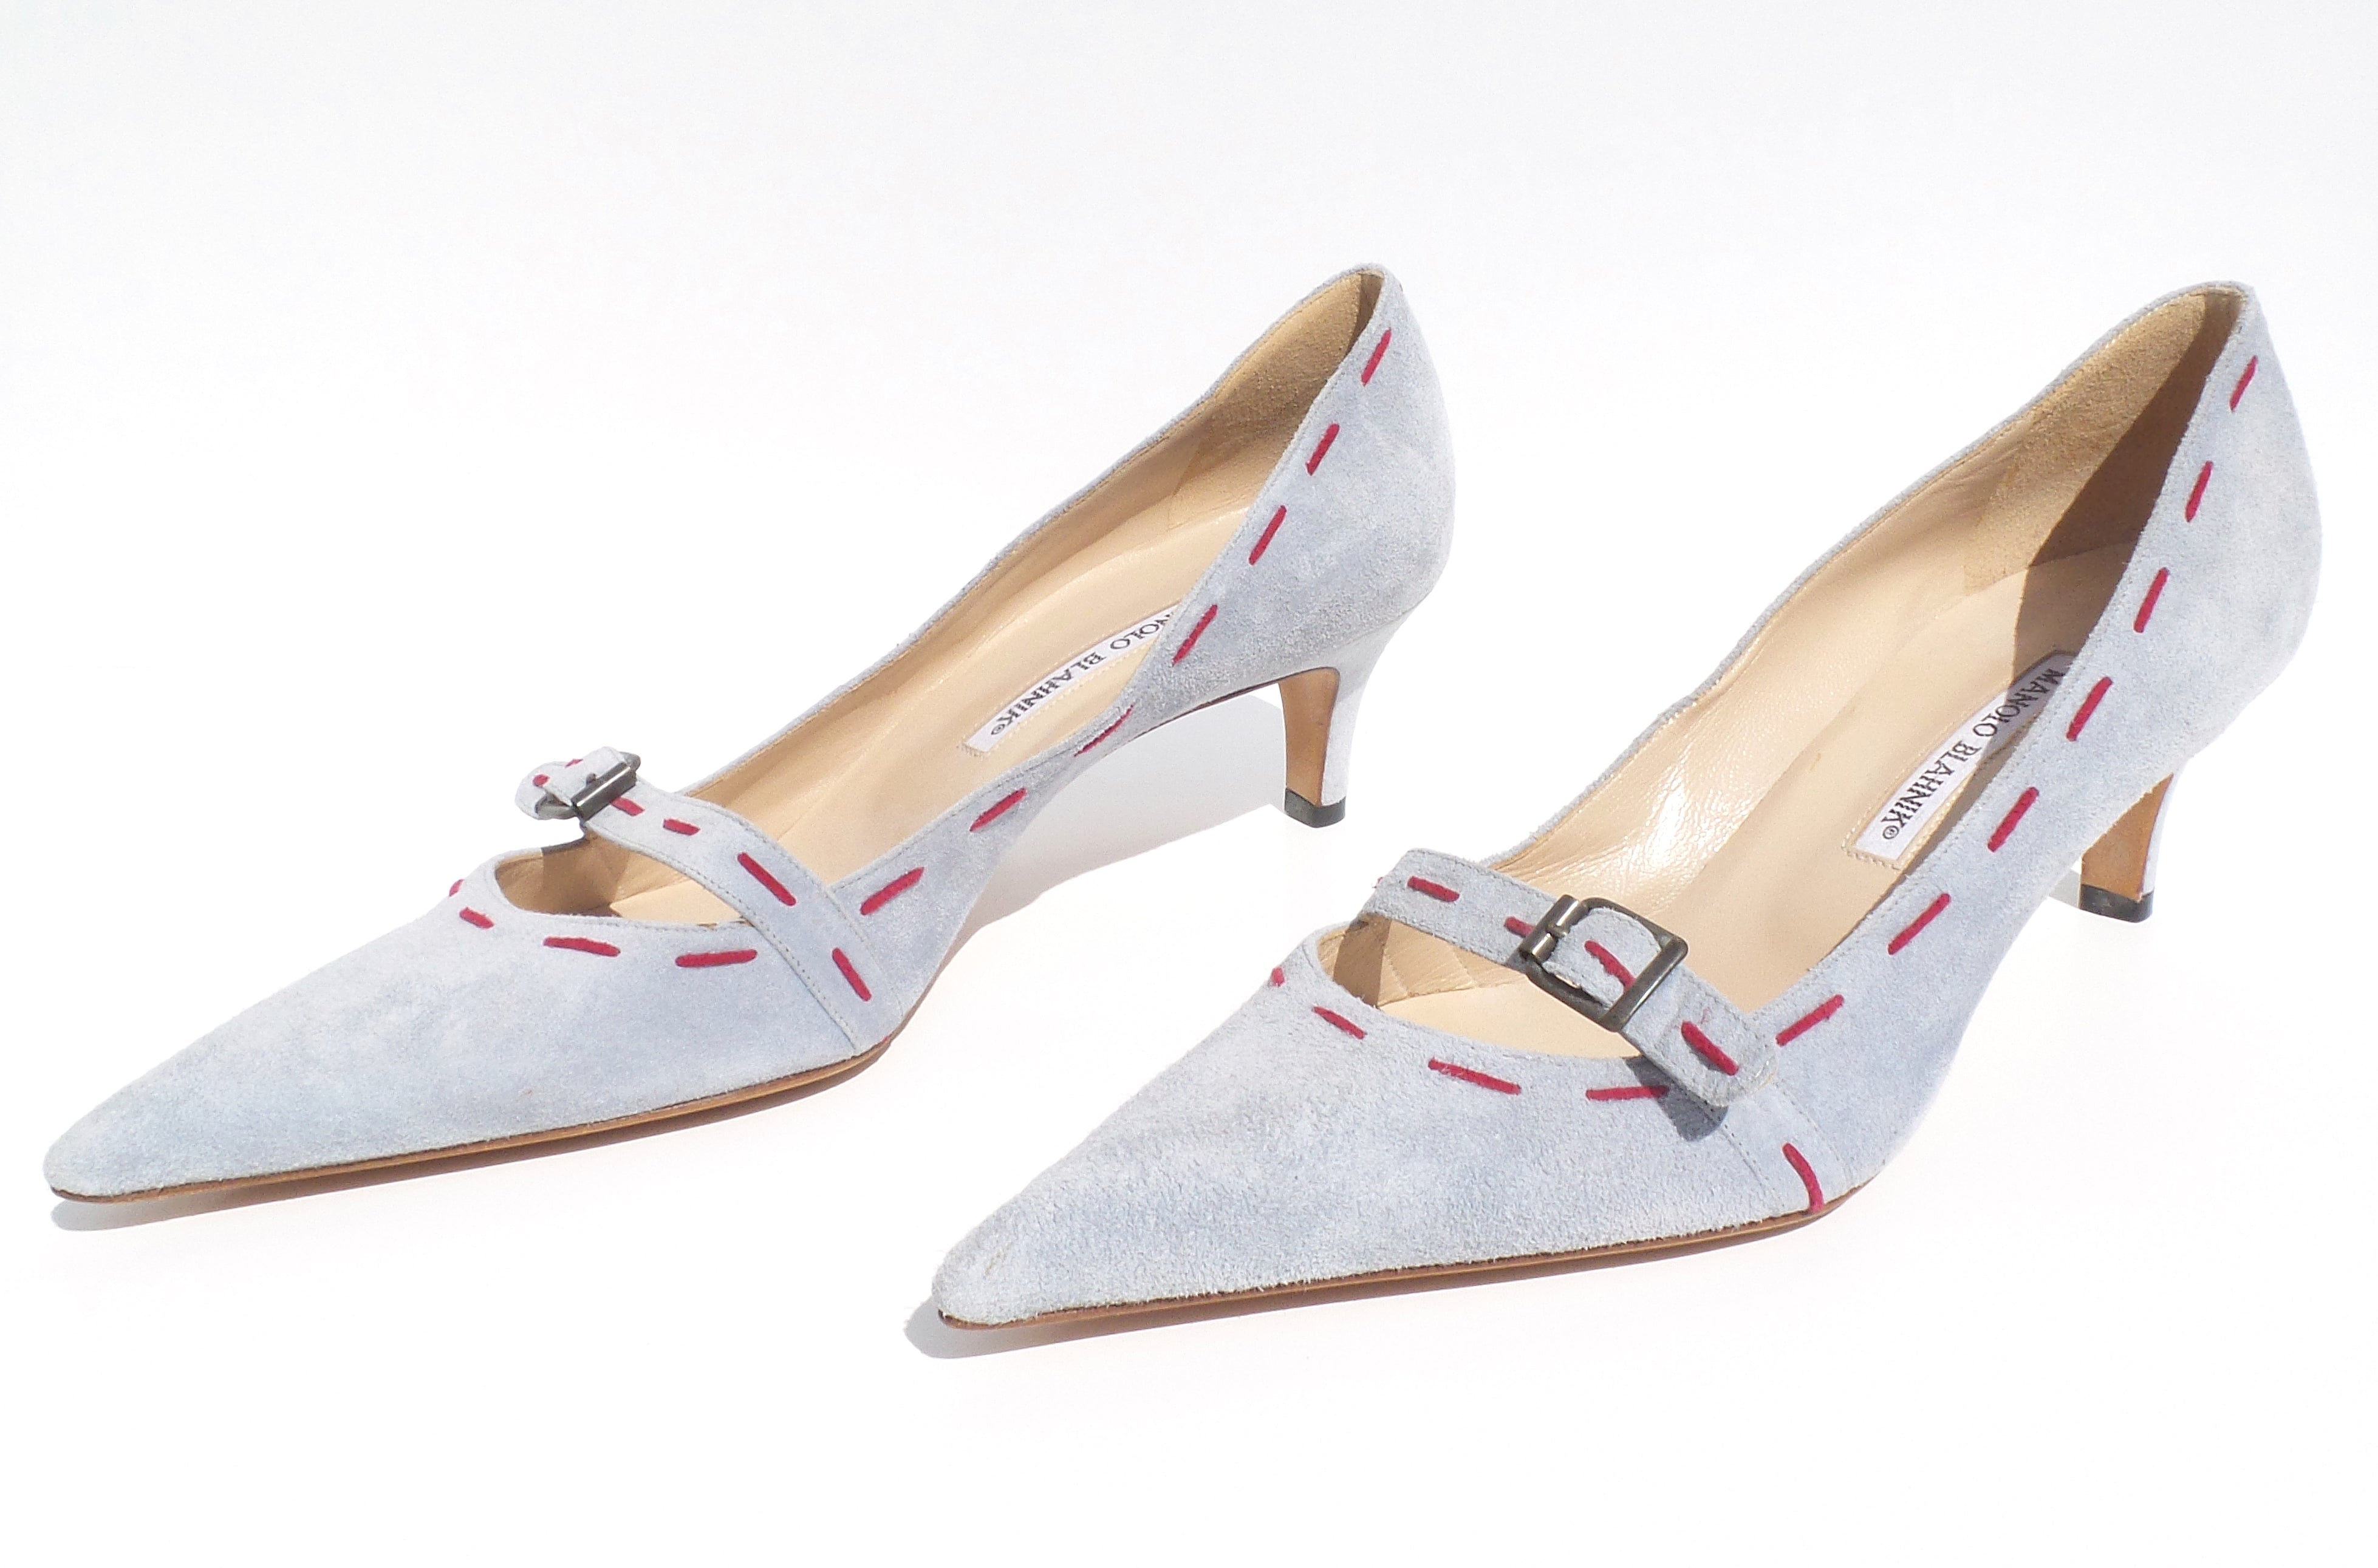 'Sold' MANOLO BLAHNIK Light Blue Suede Pink Stitched Buckle Point Toe Heels Pumps 40.5